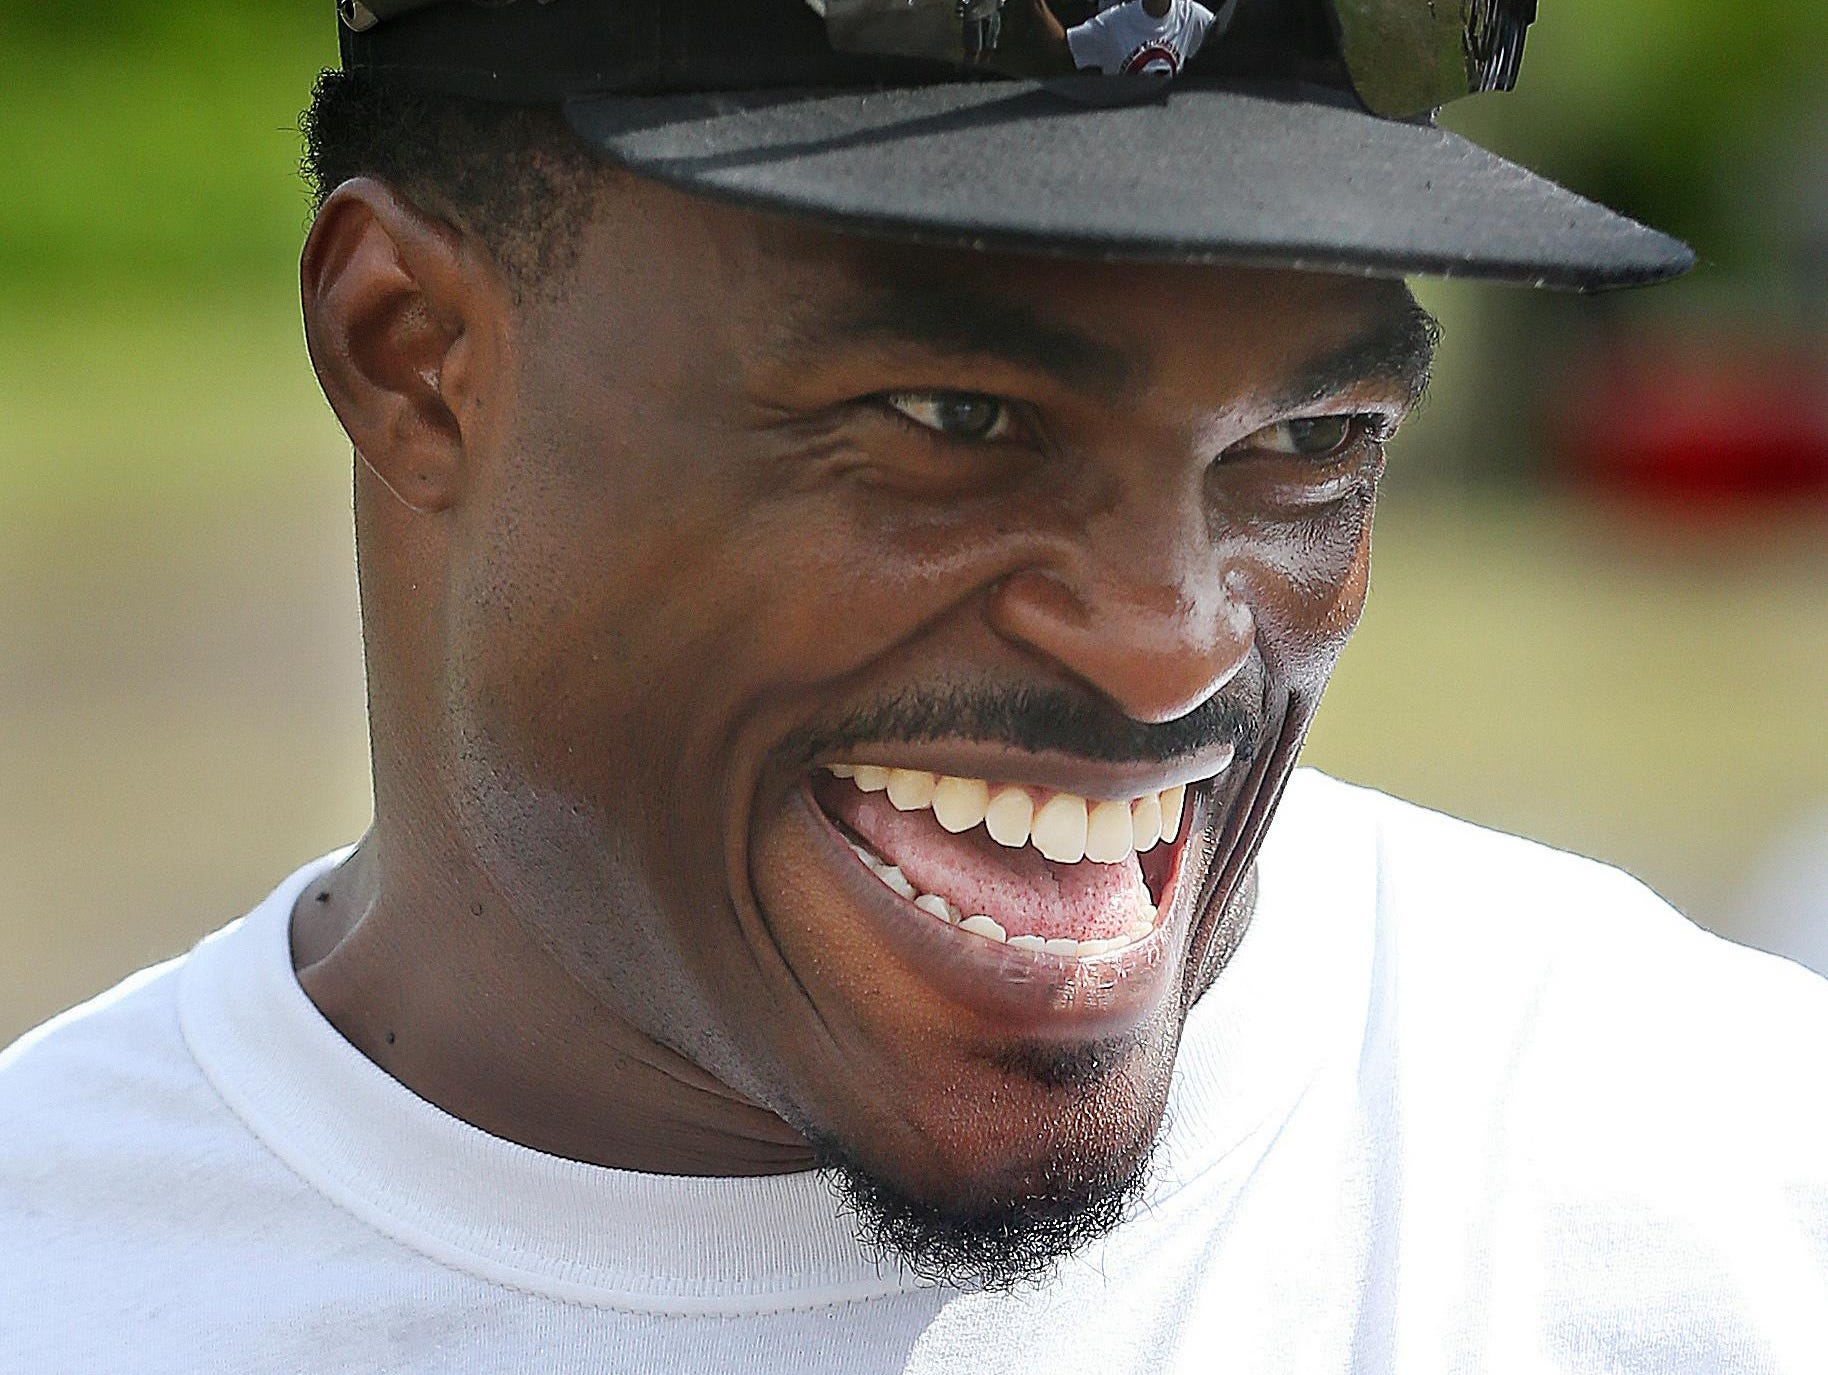 """Ernie Sims smiles as he watches young players go through their drills at last year's 7th annual Ernie Sims Celebrity Weekend, which benefits his charitable initiative, the Ernie Sims Big HITS Foundation. The Big HITS Foundation was launched in March 2009 to support community-based organizations serving at-risk youth and to promote animal humanity. HITS stands for """"Helping to Instill Tools for Success."""""""